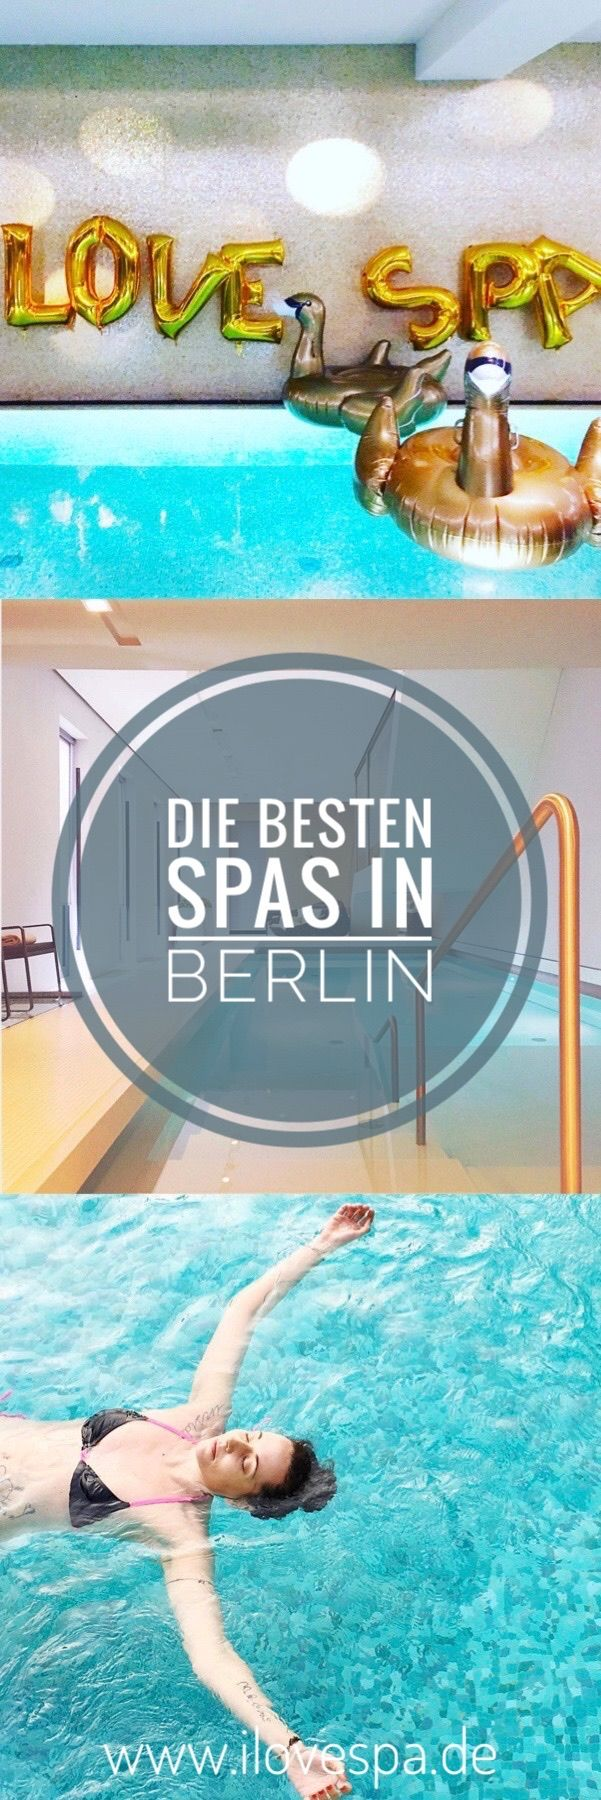 Spa & Wellness in Berlin - die besten Spas in Berlin